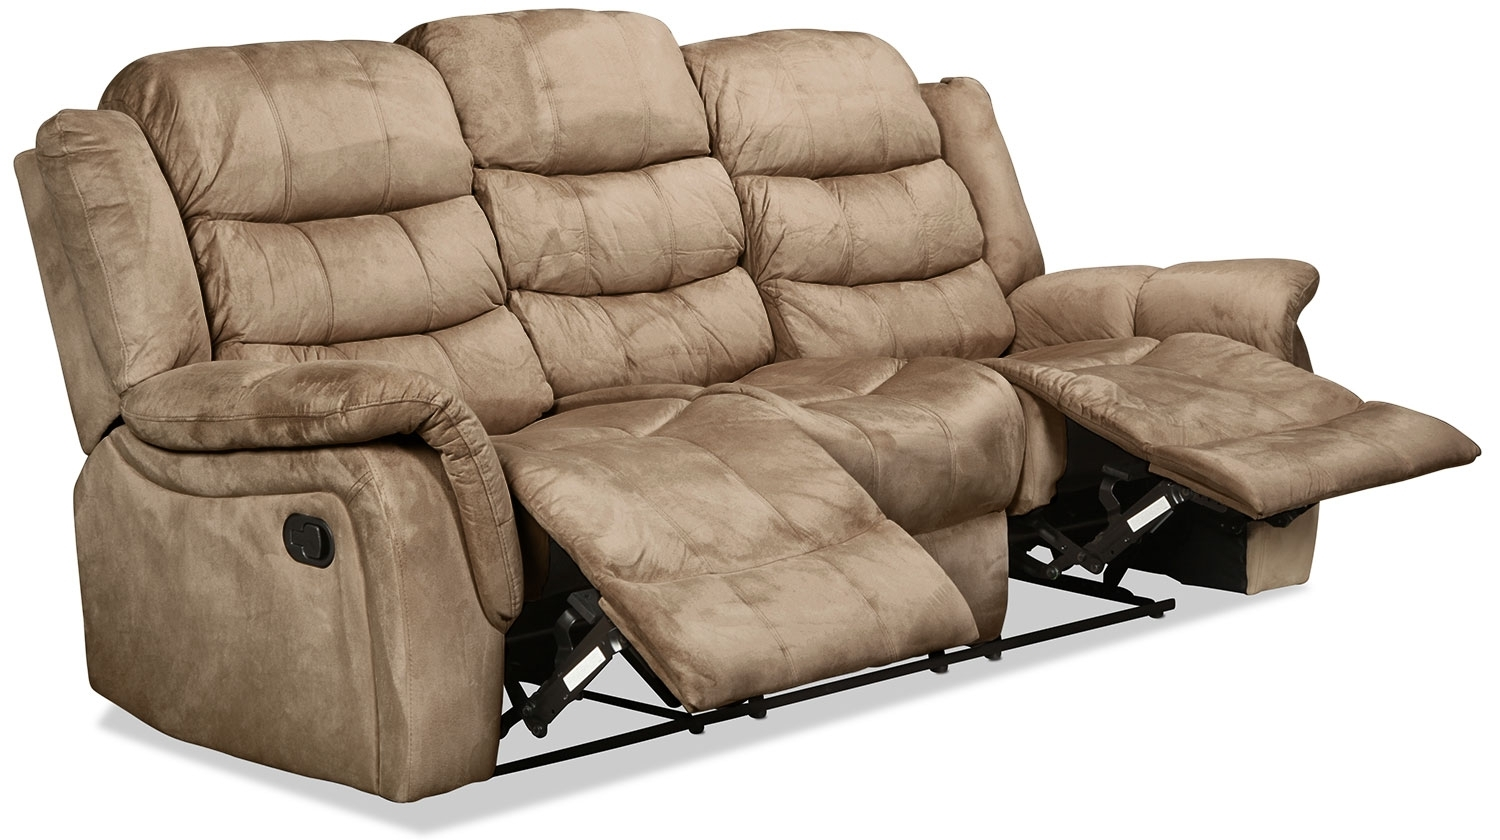 Benton Reclining Sofa – Cobblestone   Intended For Benton 4 Piece Sectionals (Image 7 of 25)